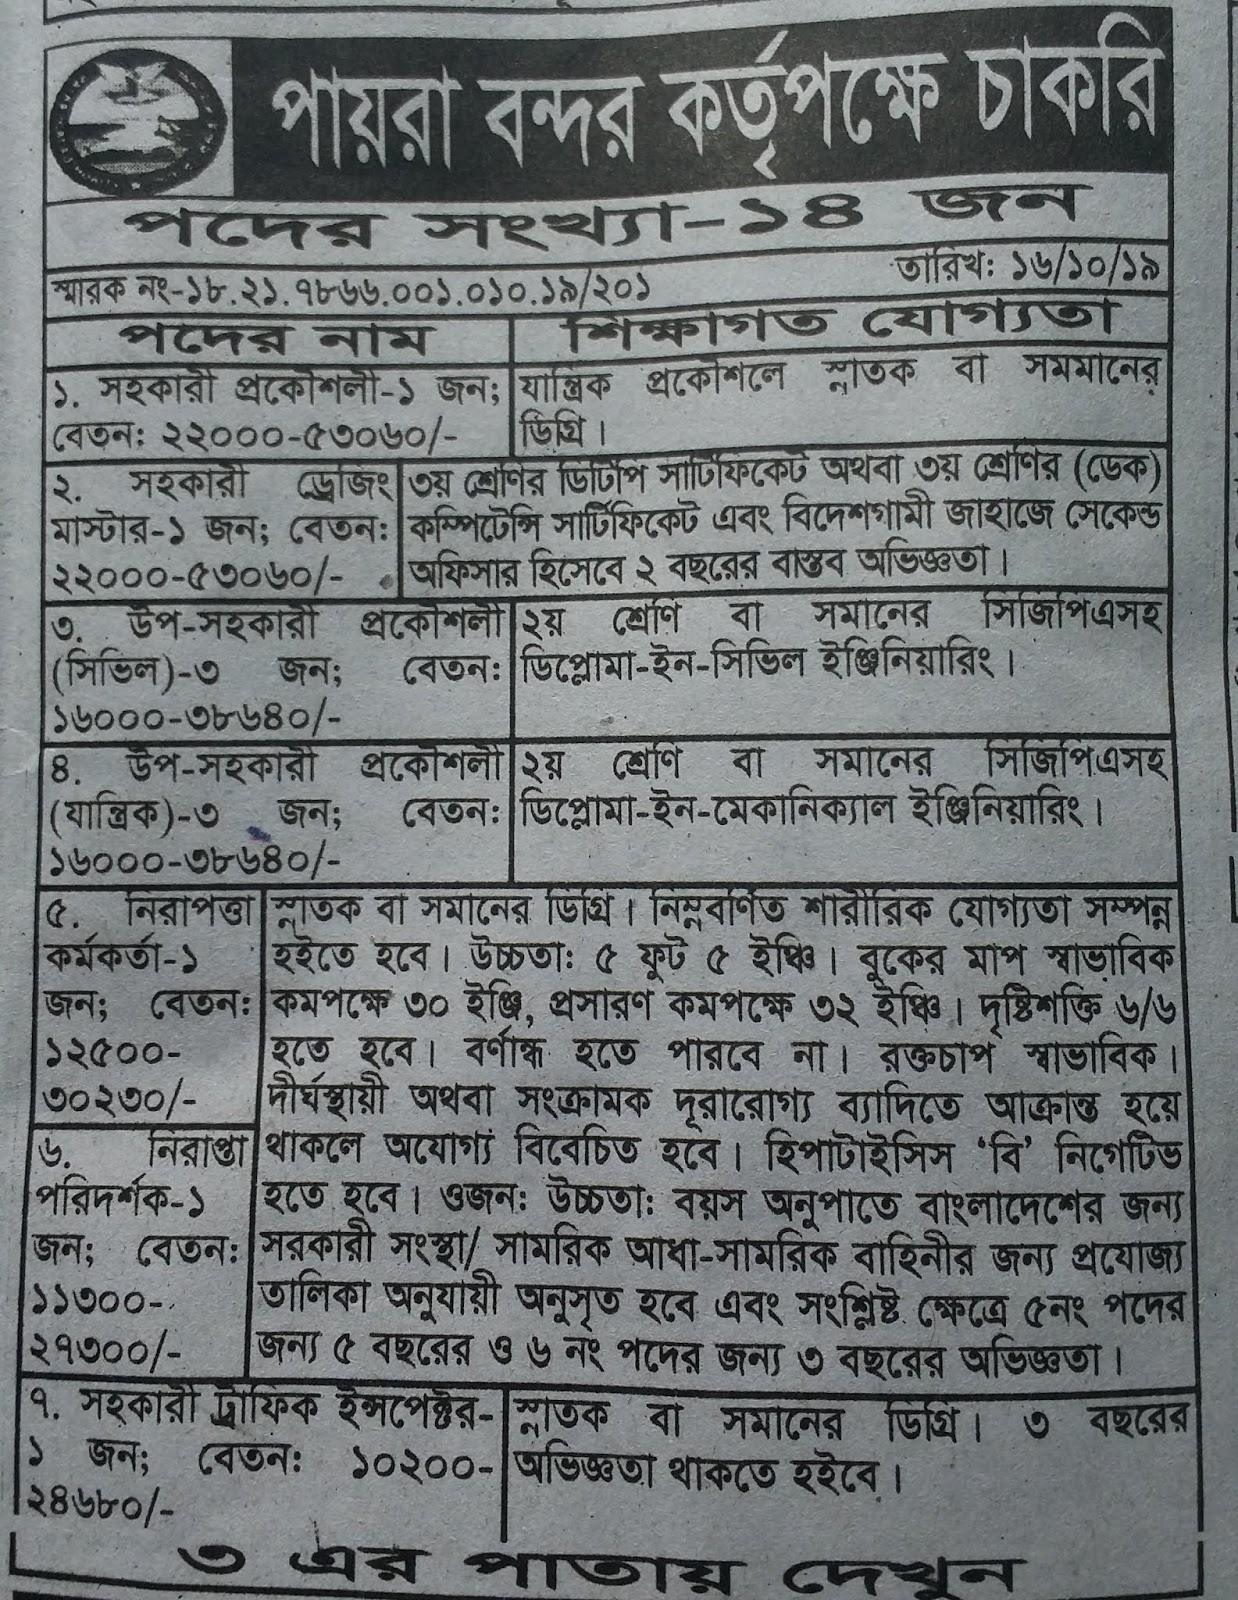 Payra Port Authority Job Circular 2019